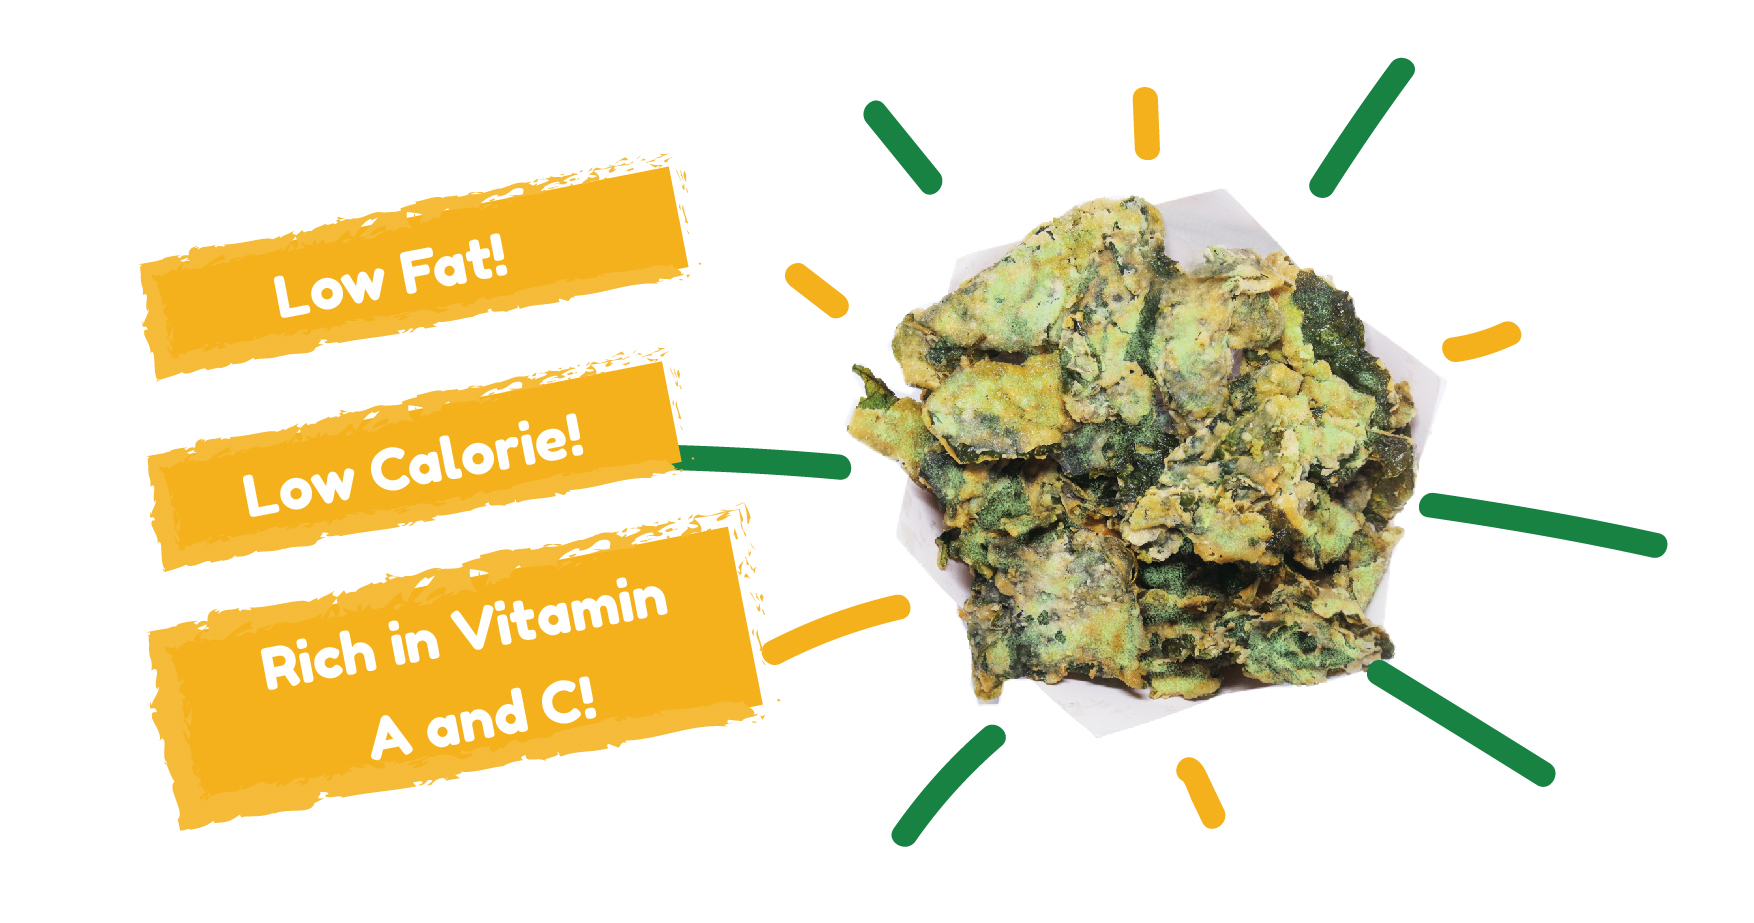 Vitamin A and C, Low Fat, Low Calorie